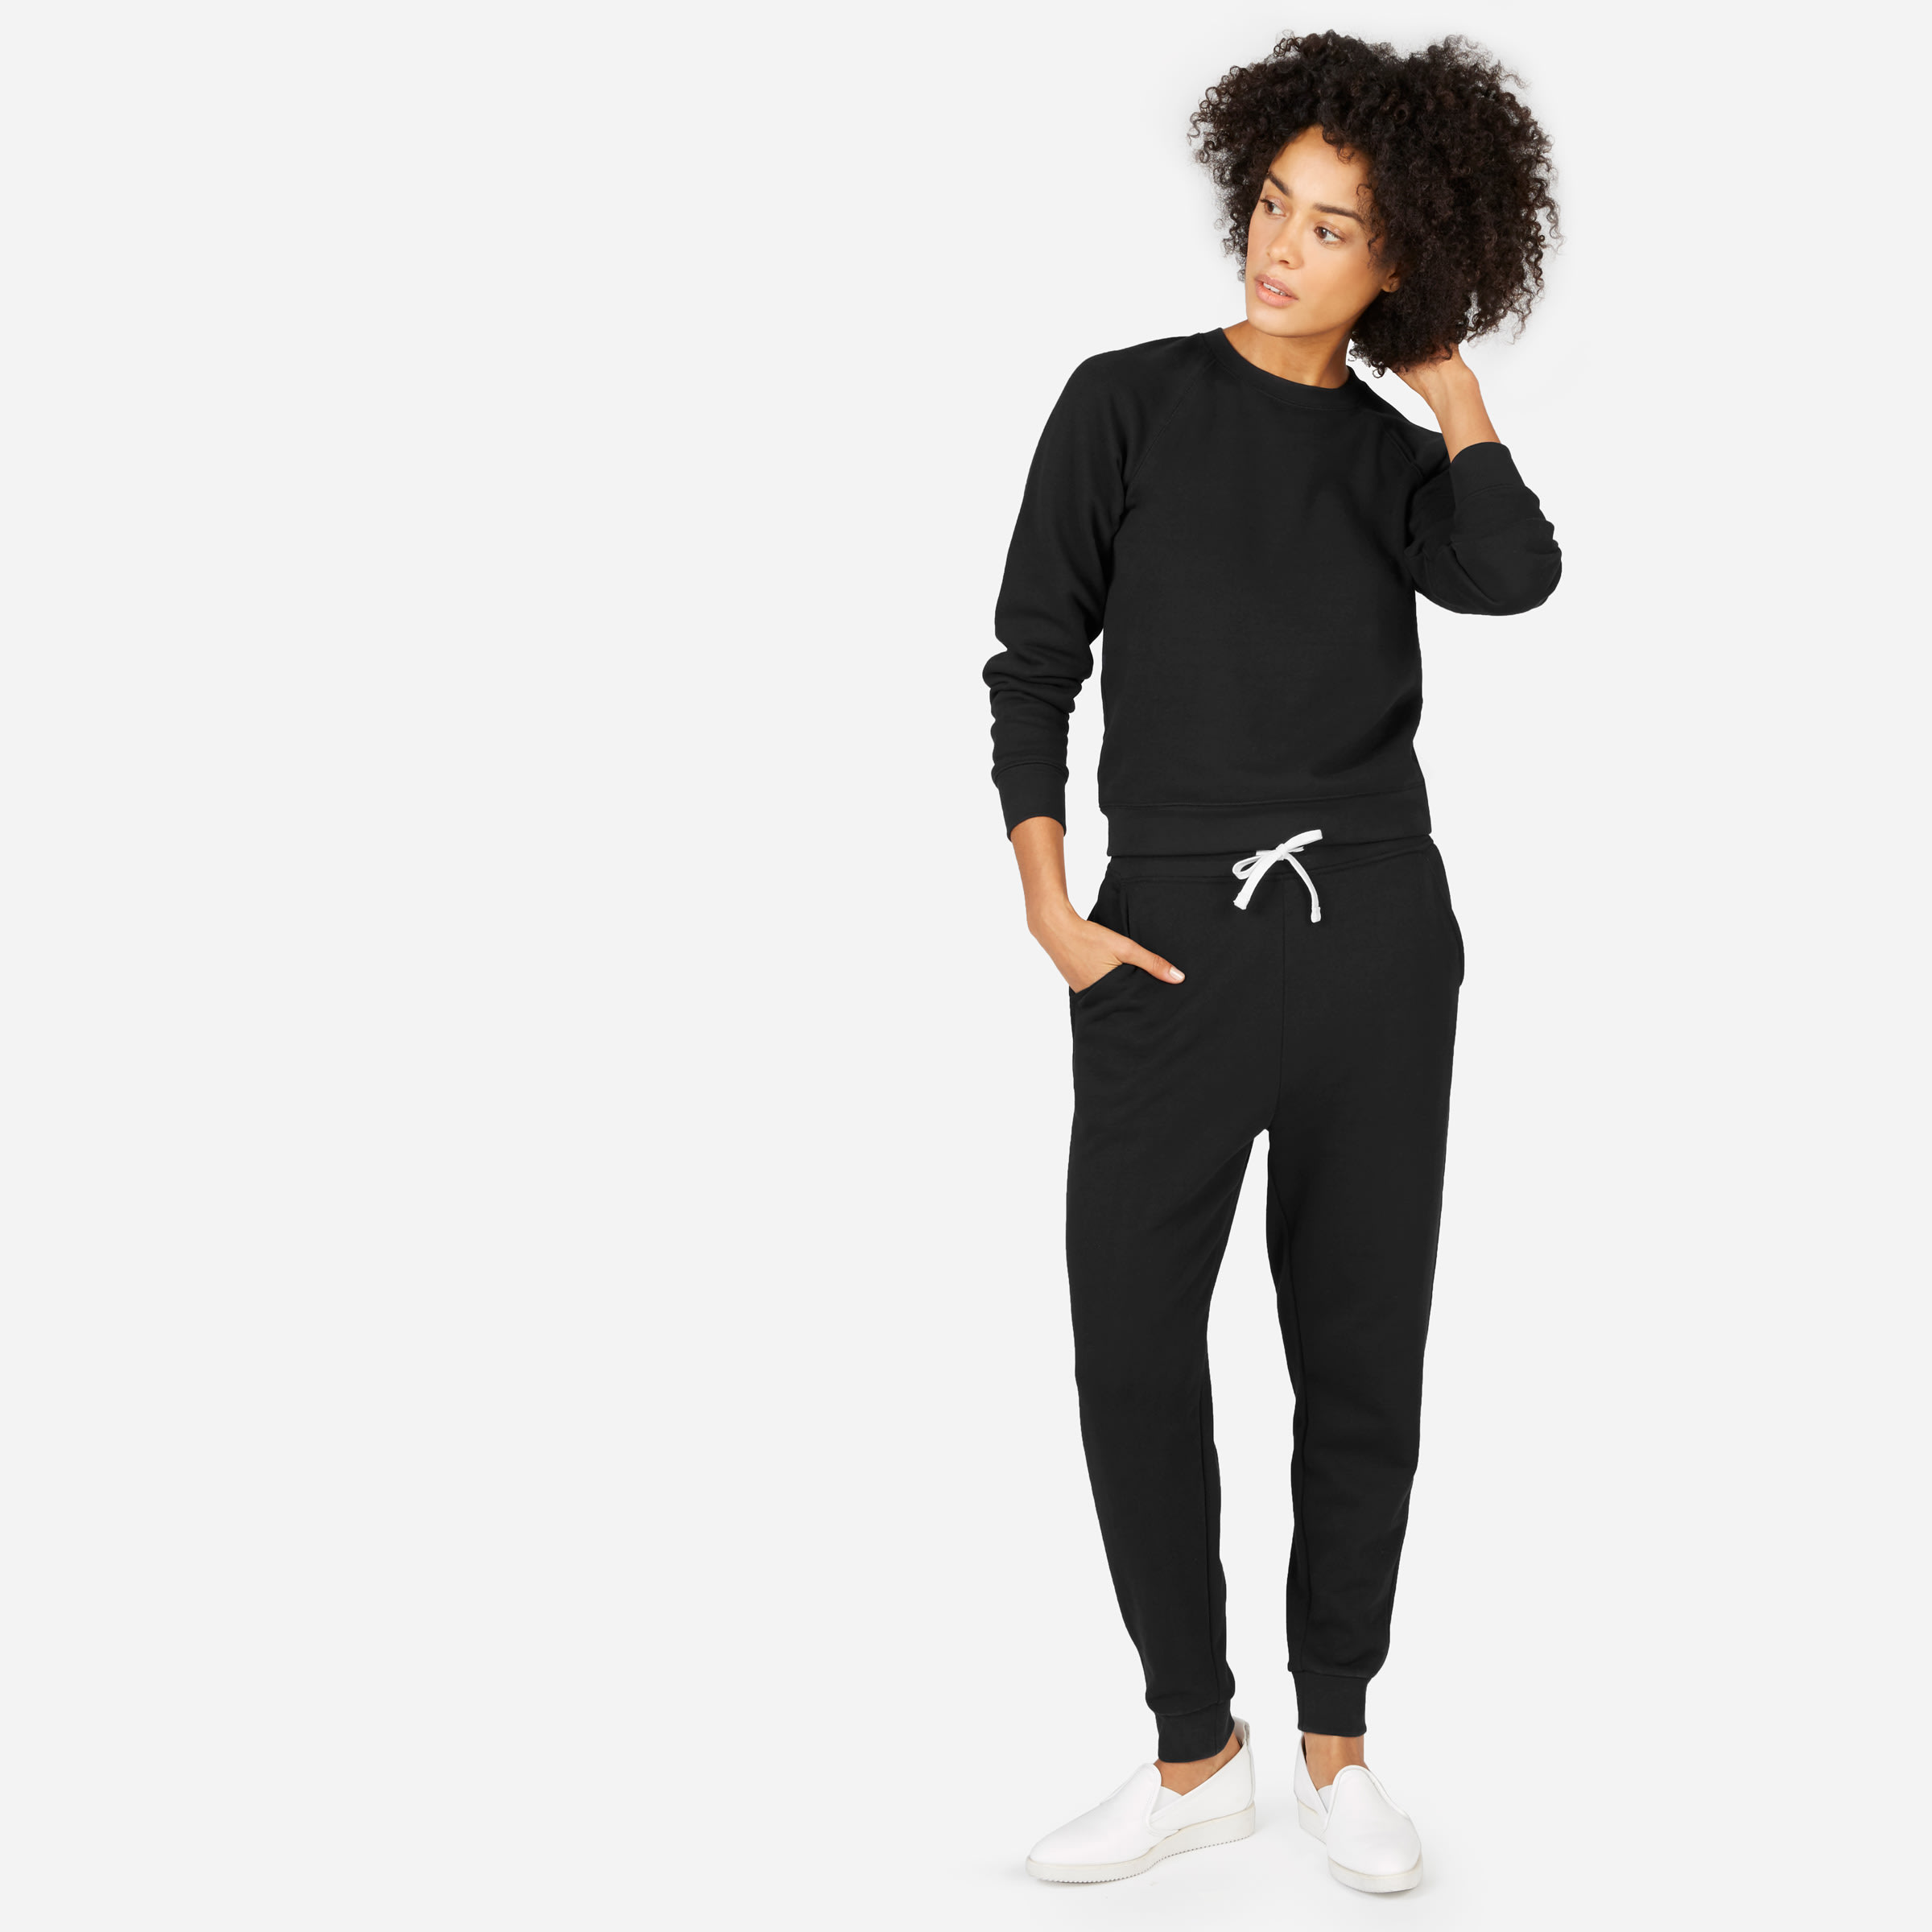 a8b39a599af Women s Classic French Terry Sweatpant